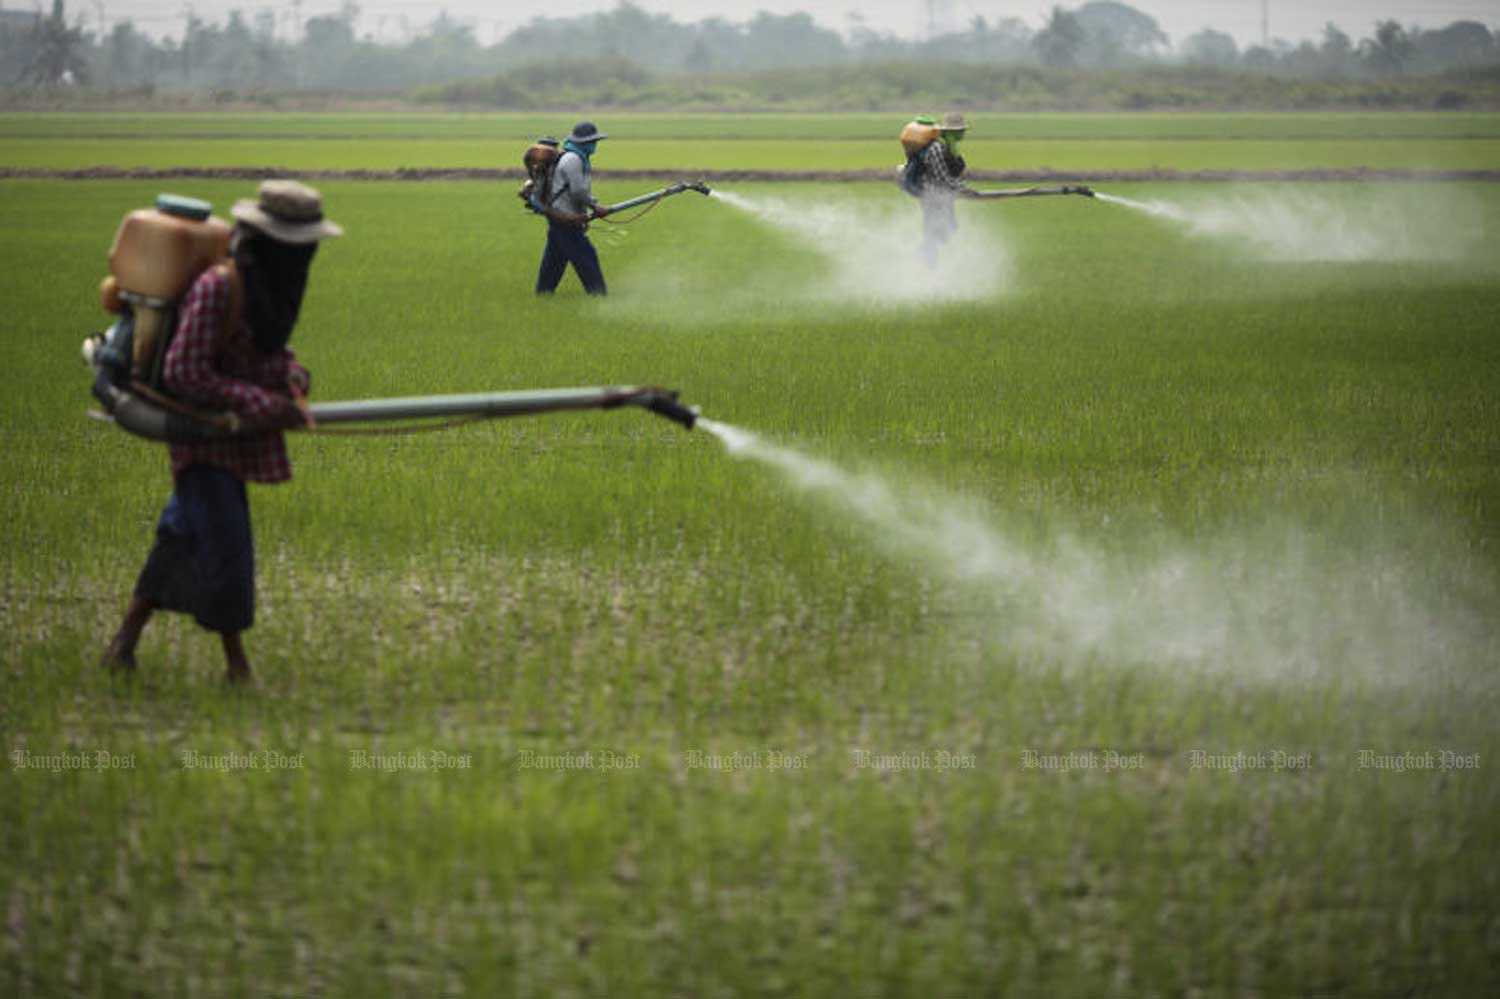 Farmers spray weedkiller in Nong Chok district of Bangkok. (File photo by Patipat Janthong)